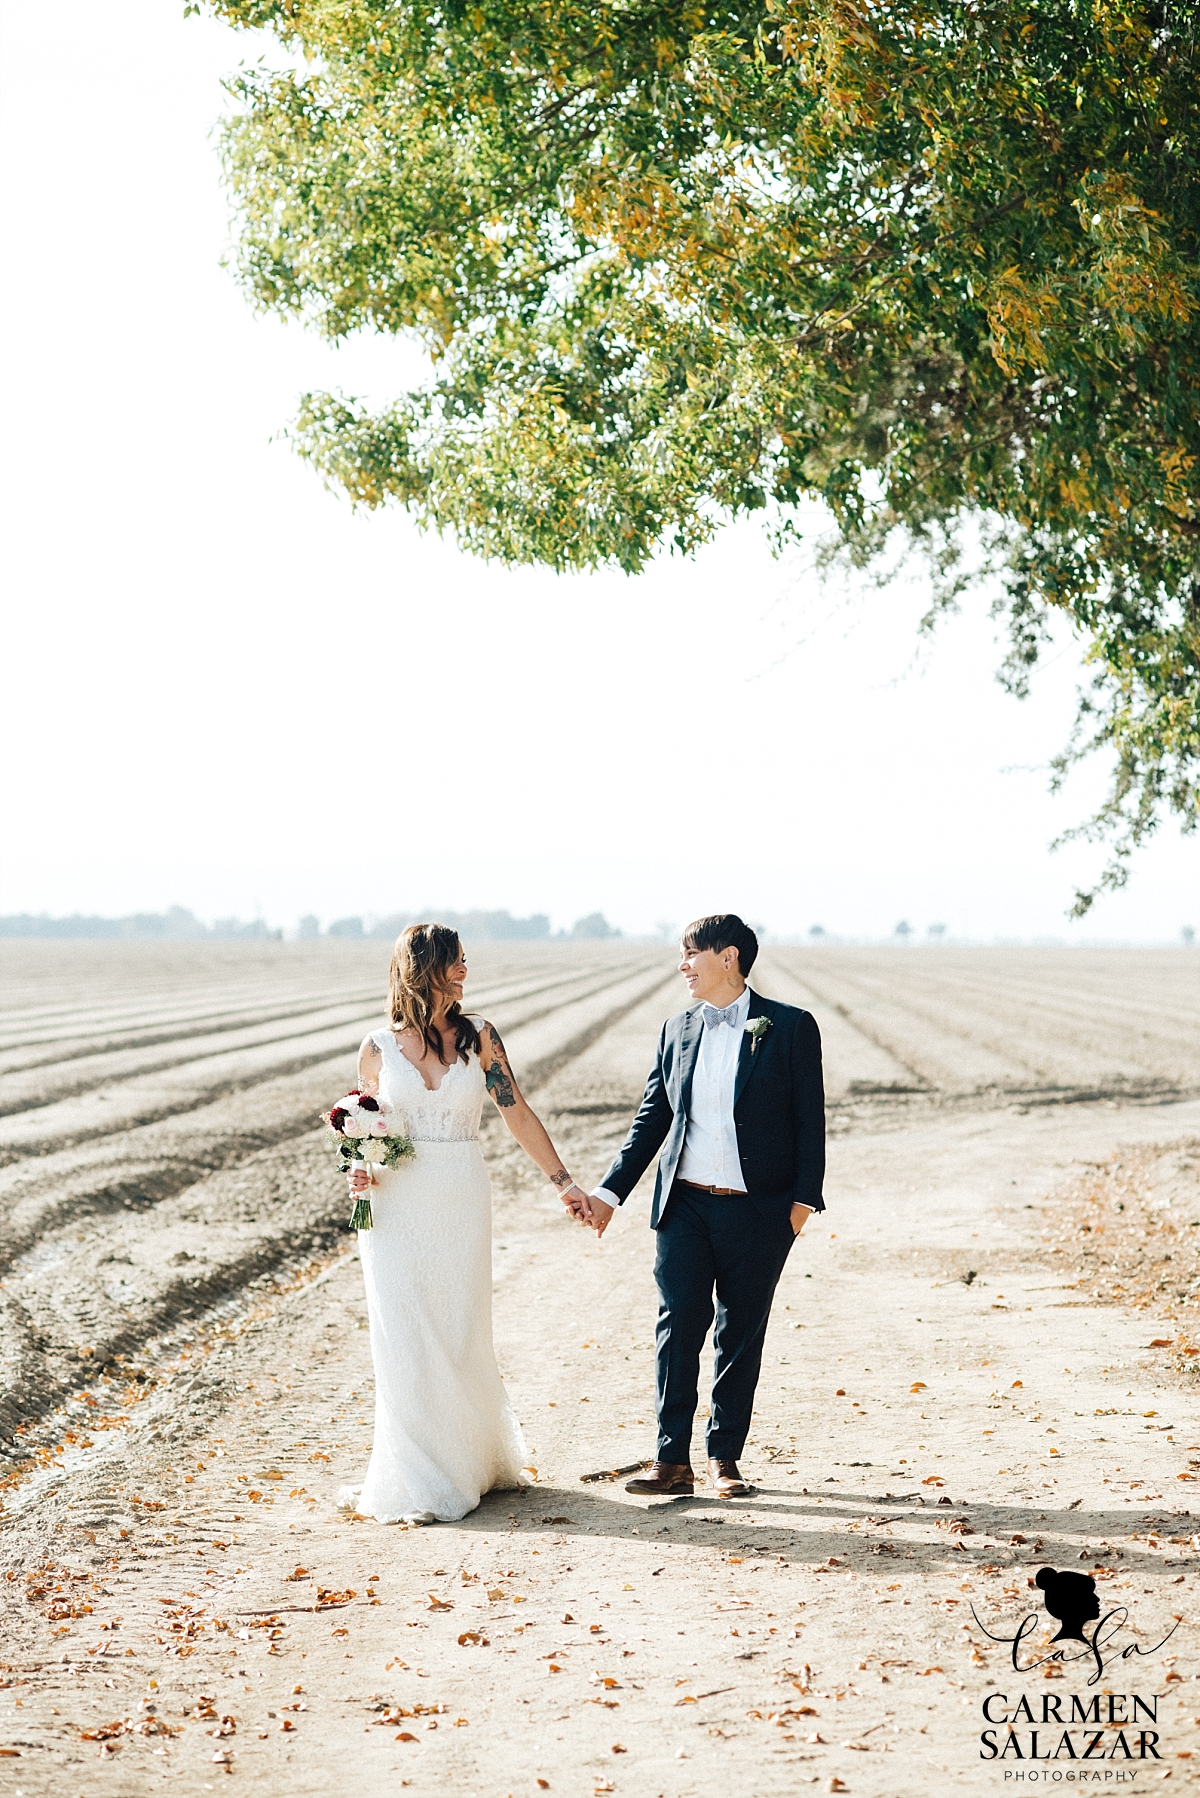 Grimes, CA outdoor wedding photography - Carmen Salazar